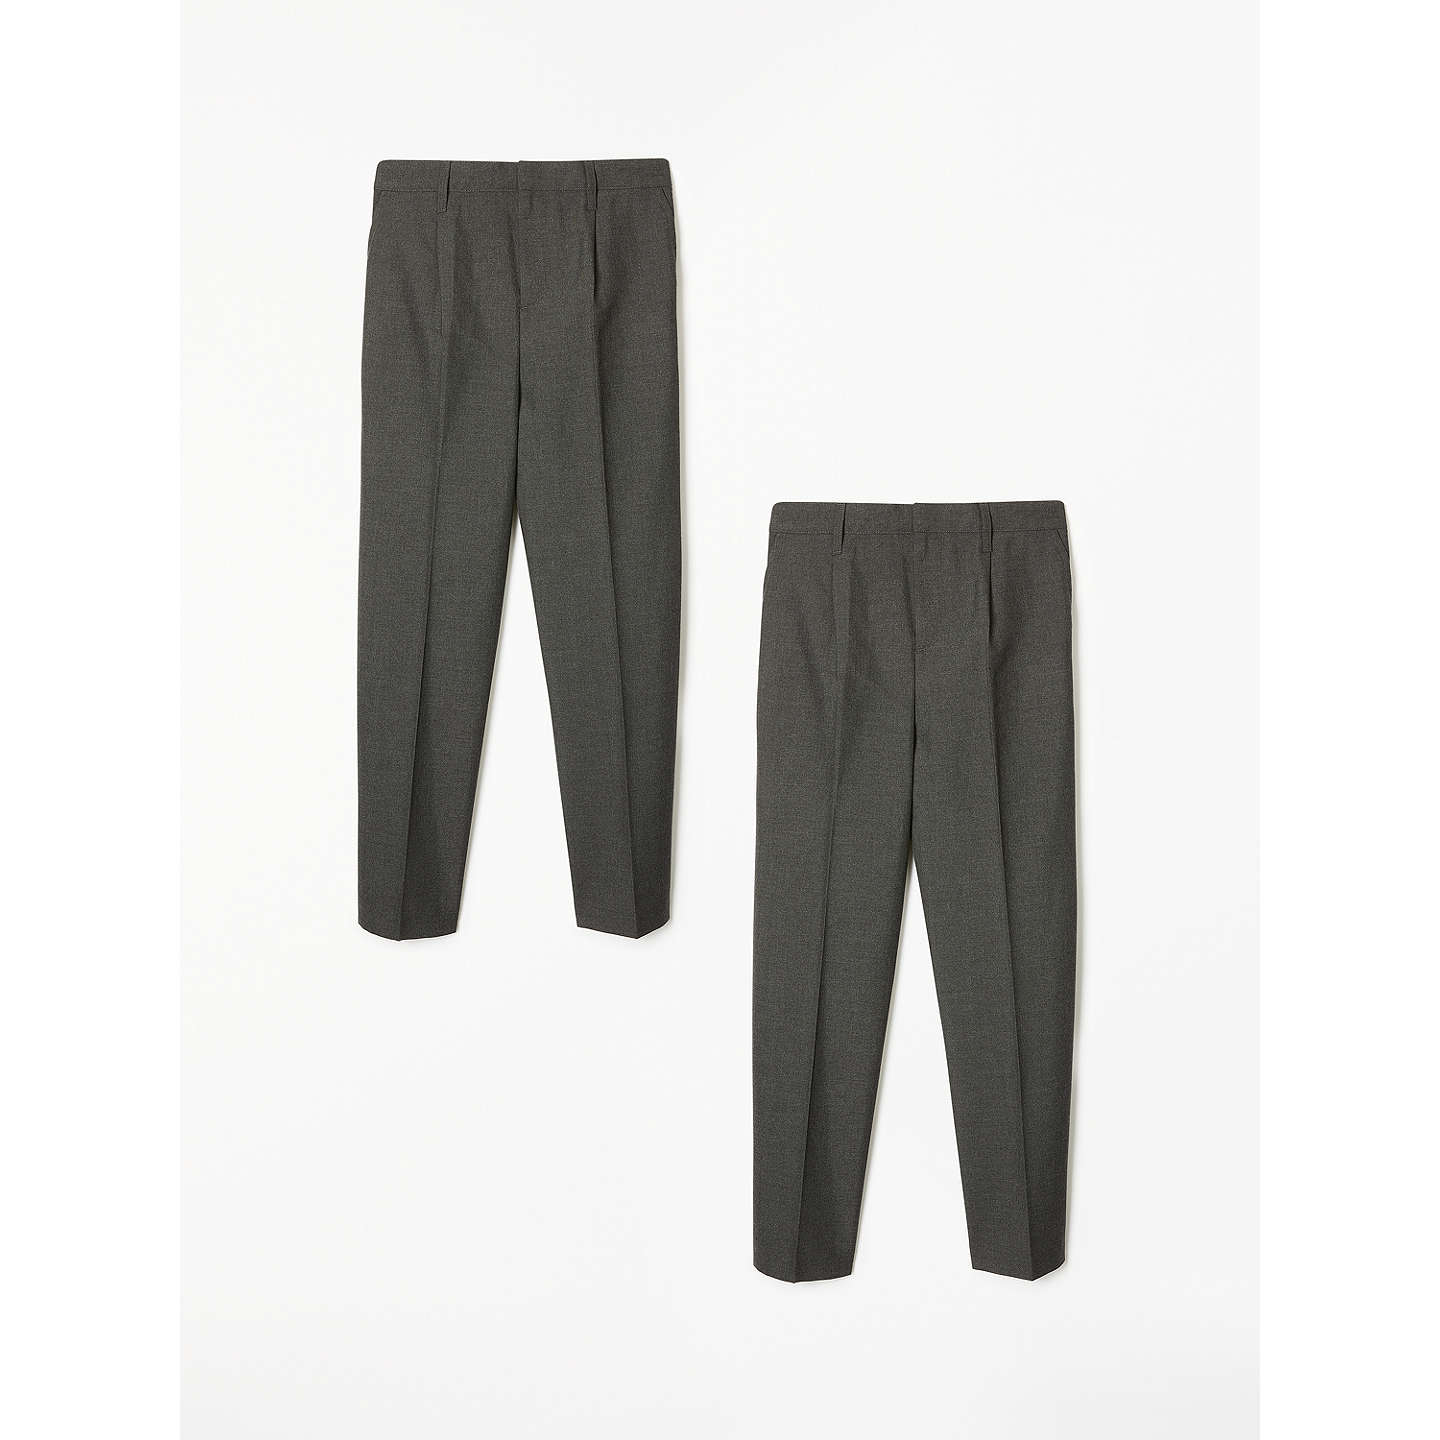 abfd5a9827 These John Lewis basics adjustable waist boys school trousers in a 2 pack  only come in grey and cost between £10-£16. The age range is from 3-16  years.